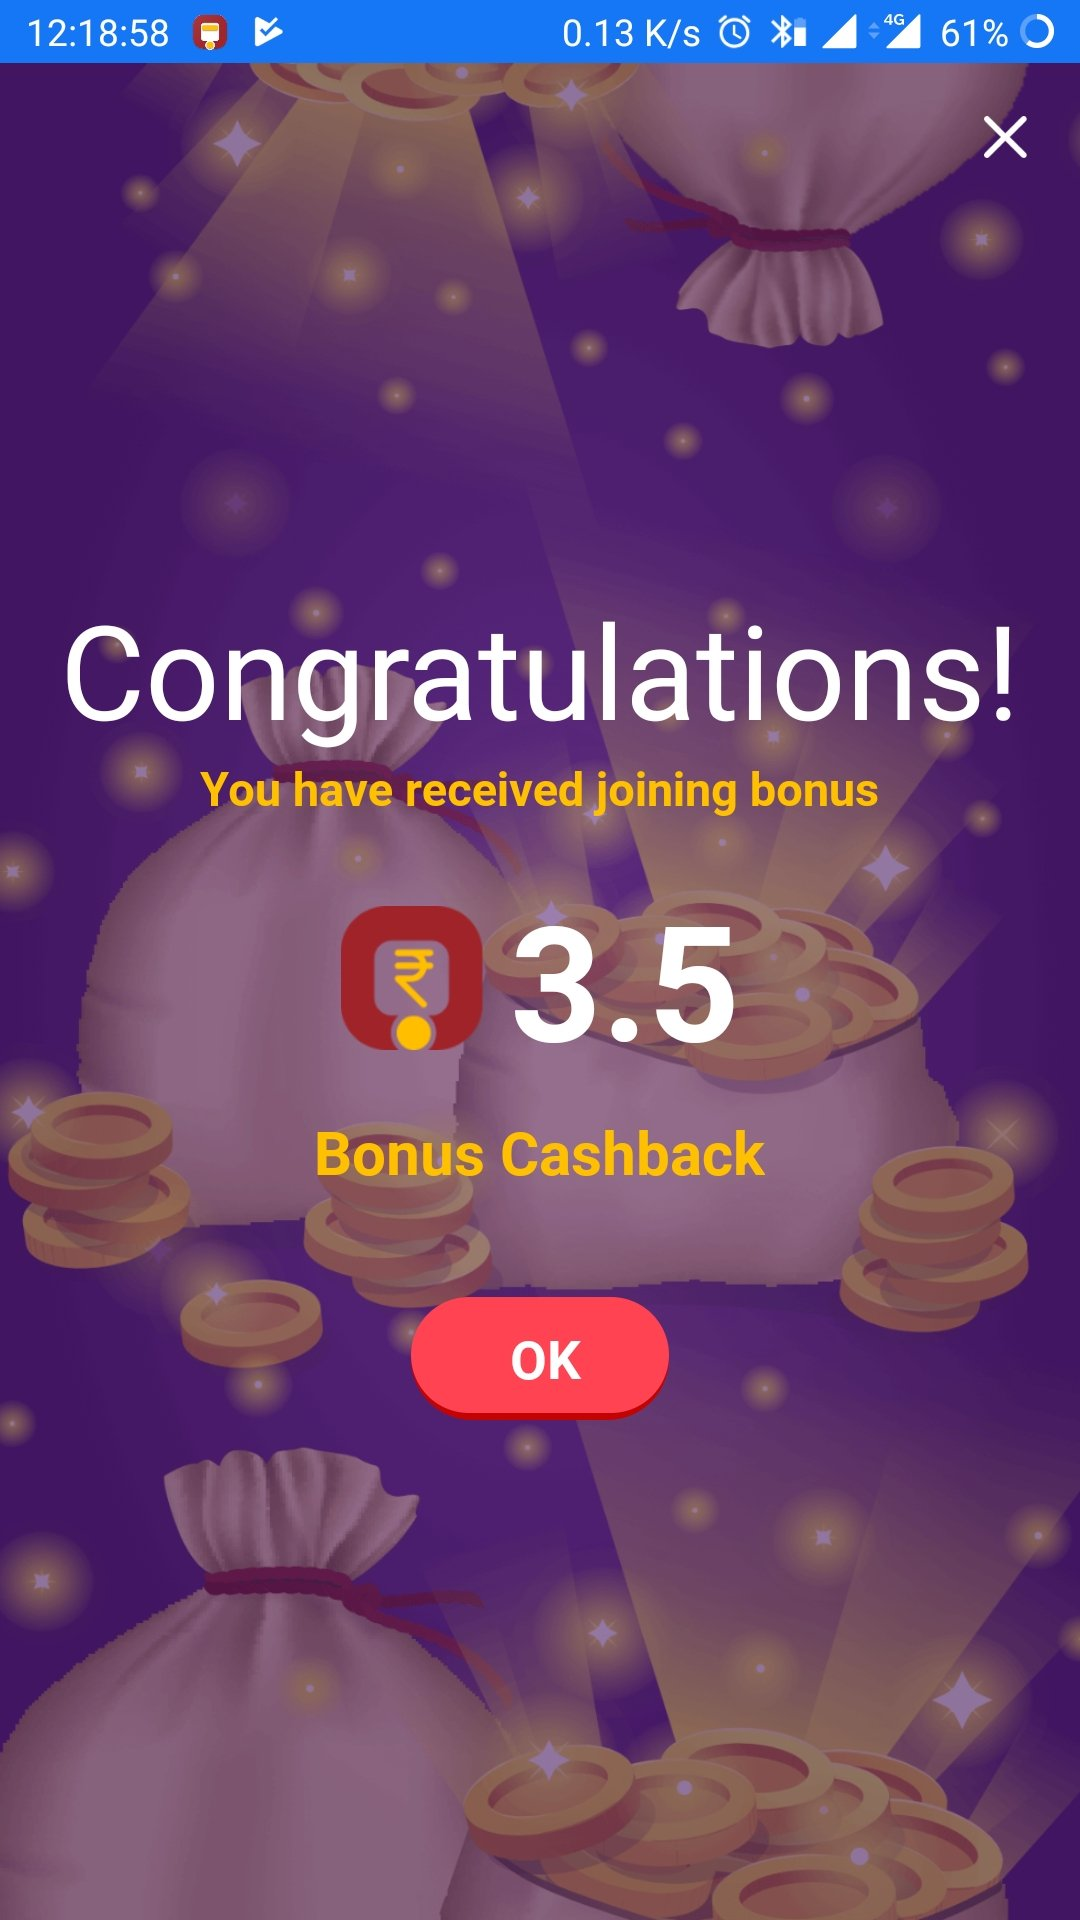 OneAd App – Earn Free Upto Rs 2.5 Lakh Per Month (Paytm/Bank Proof)